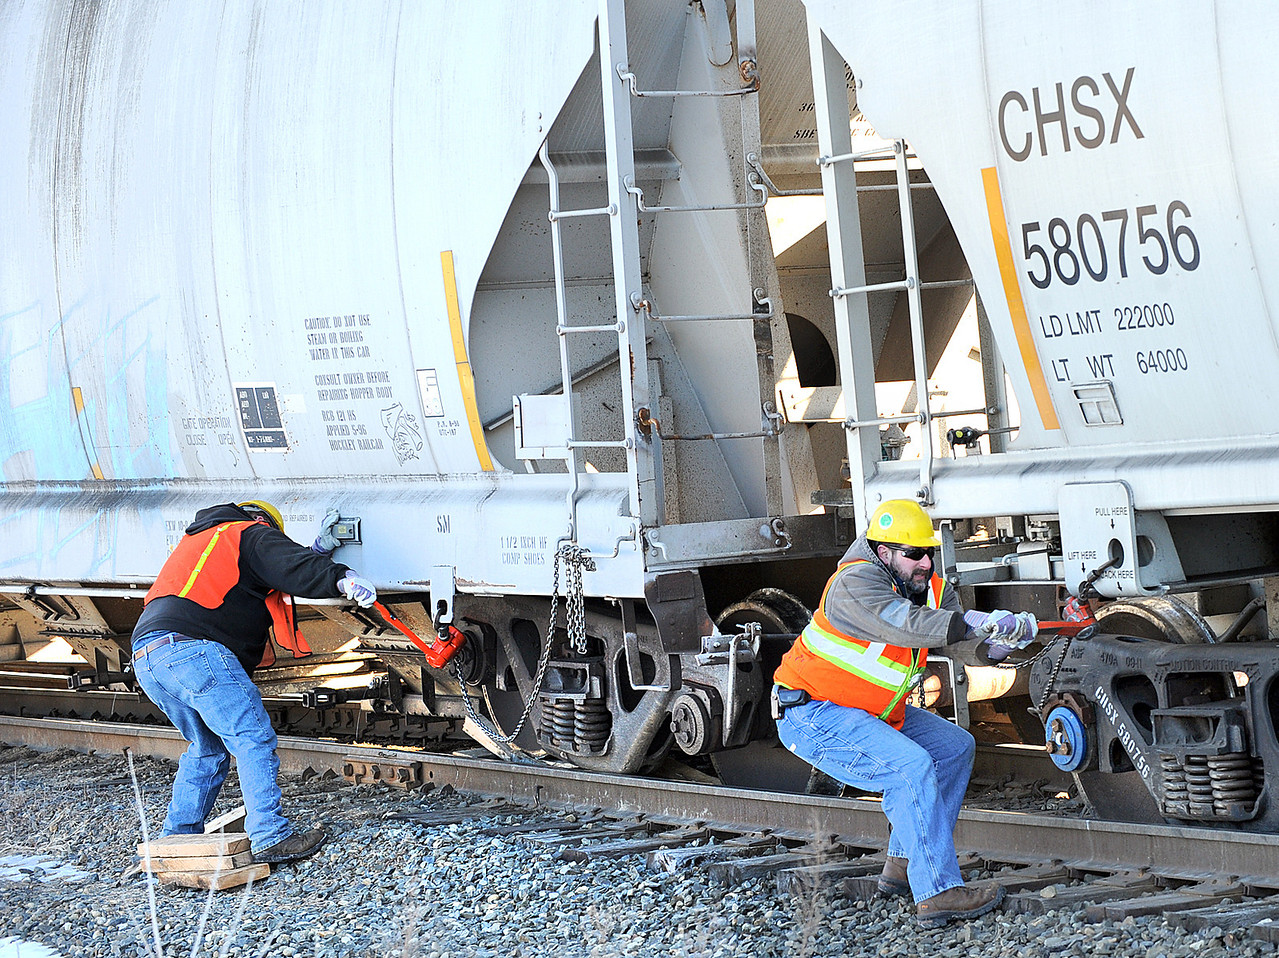 Railroad workers work to get one of 5 railroad cars back on the tracks at the Route 219 railroad crossing in Leeds early Friday morning.  Several crews, including ones from Guilford, Pan Am freight and Maine DOT were working feverishly to get the trains back on the tracks by wedging a series of wooden blocks under the wheels and inching the railroad car forward in a slow, but well practiced procedure.  There have been several derailments at this location over the past few years.